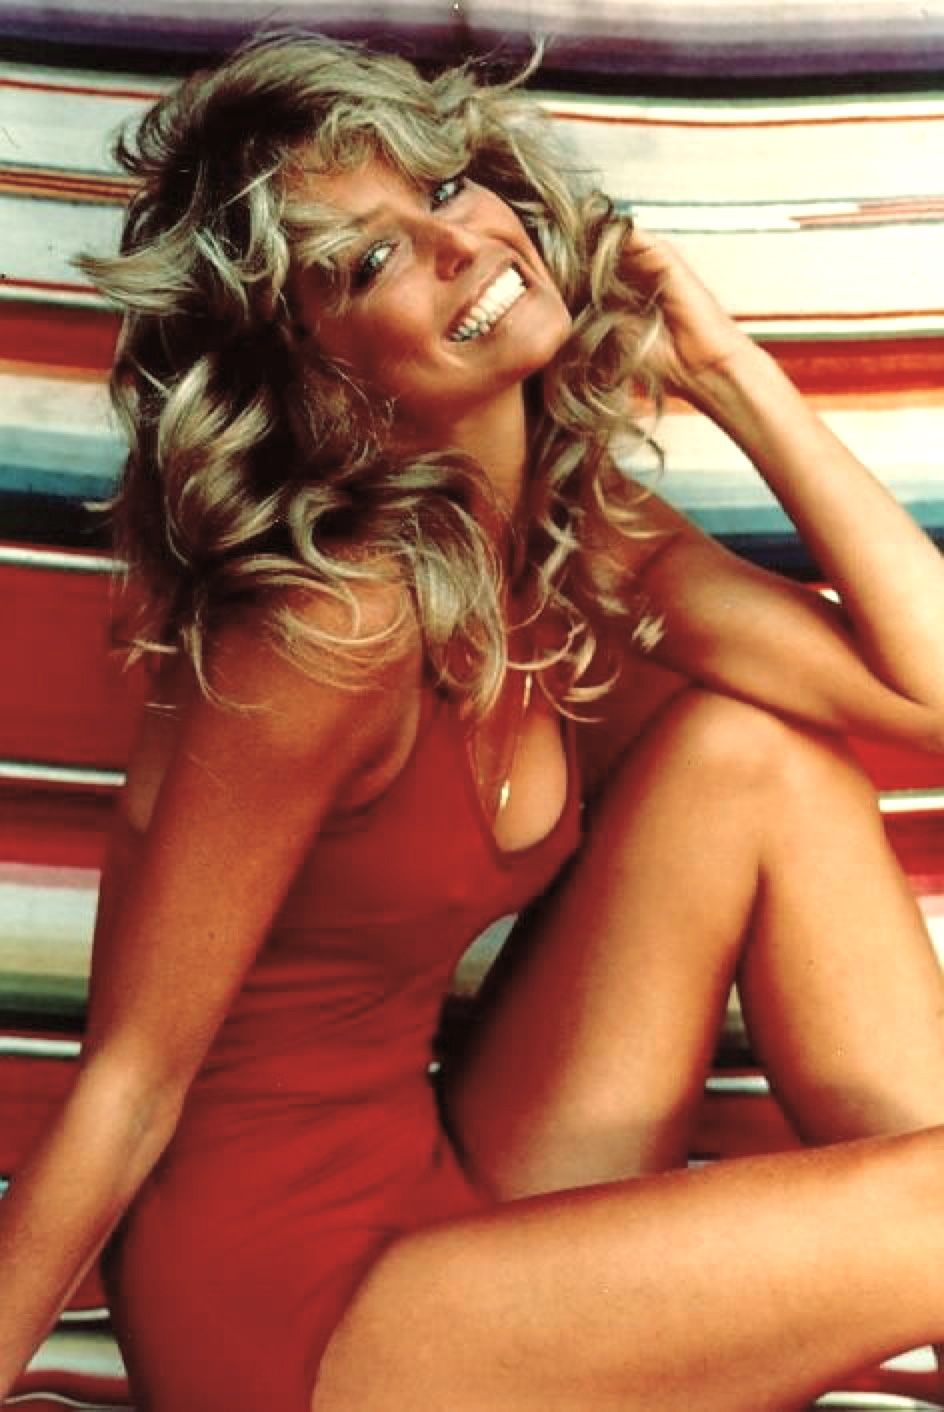 This iconic image of Farrah became the best-selling poster of all time